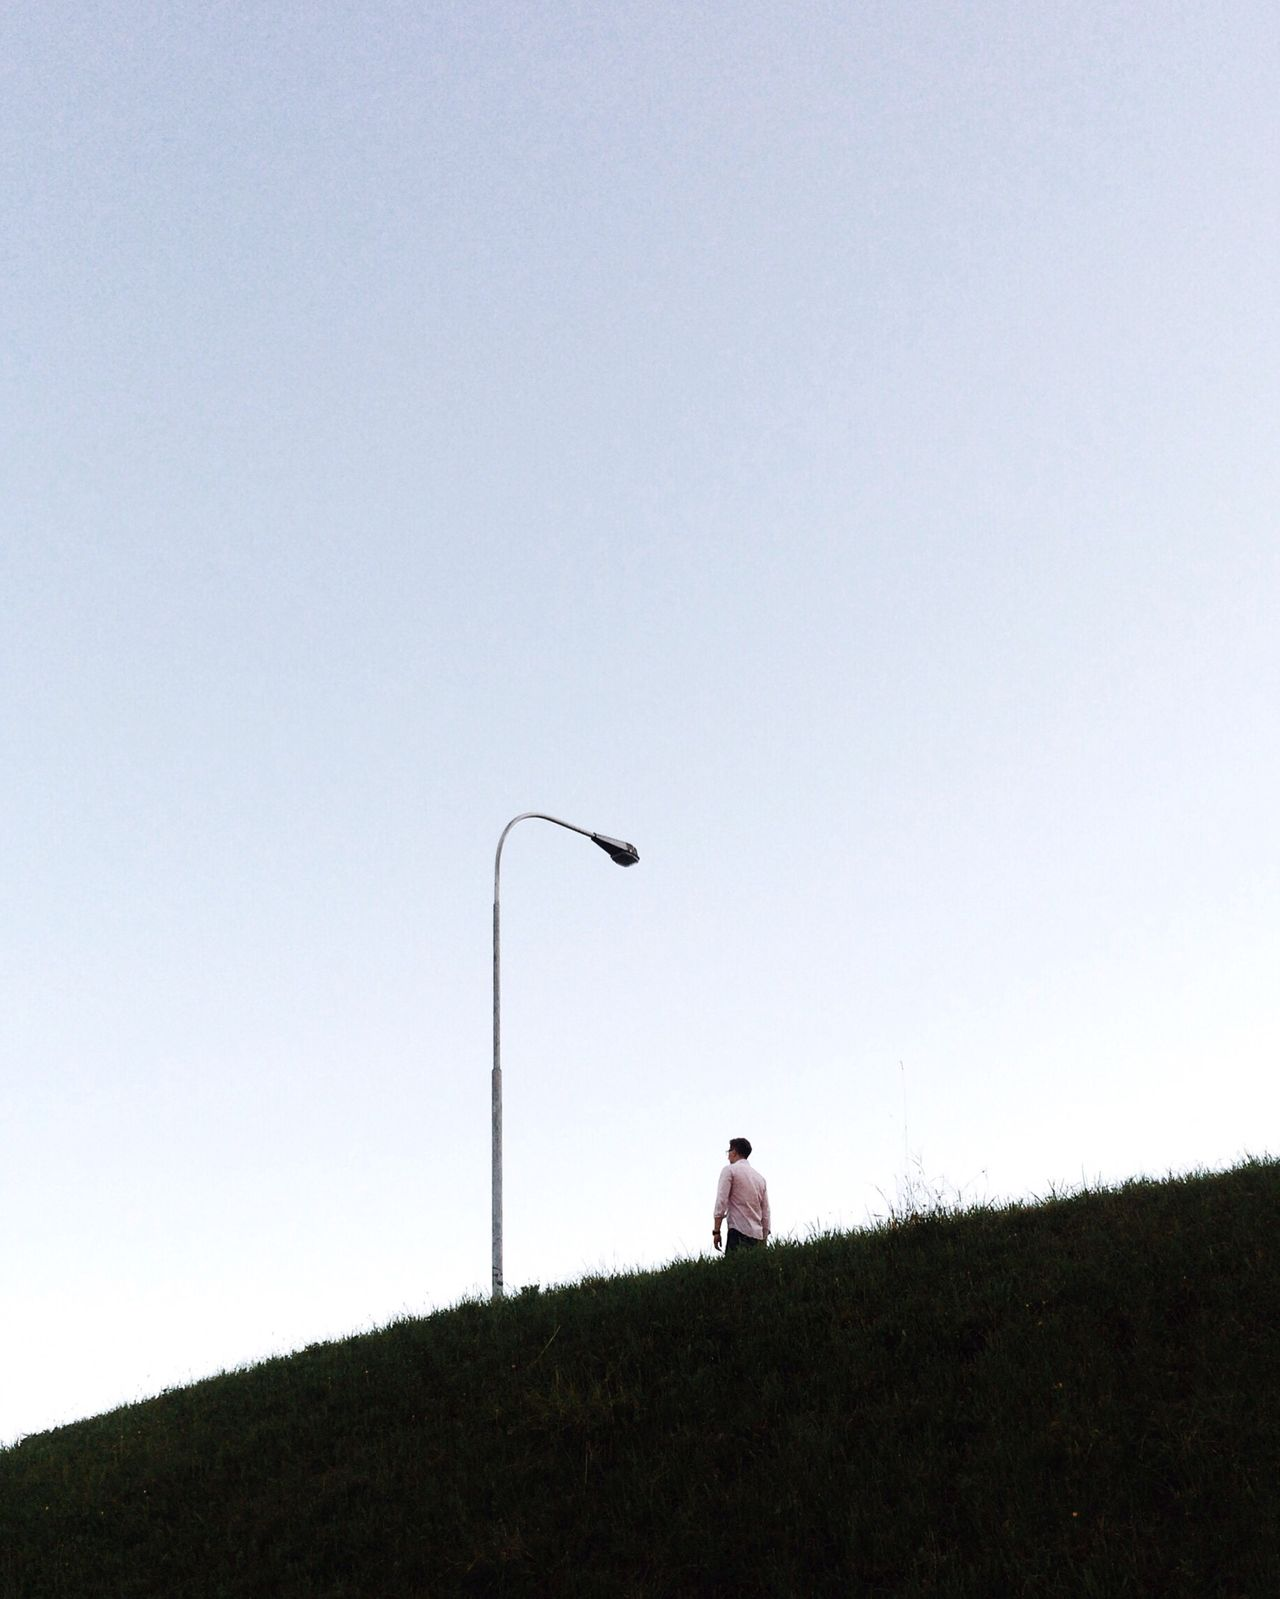 Low angle view of man walking on hill against clear sky during sunset